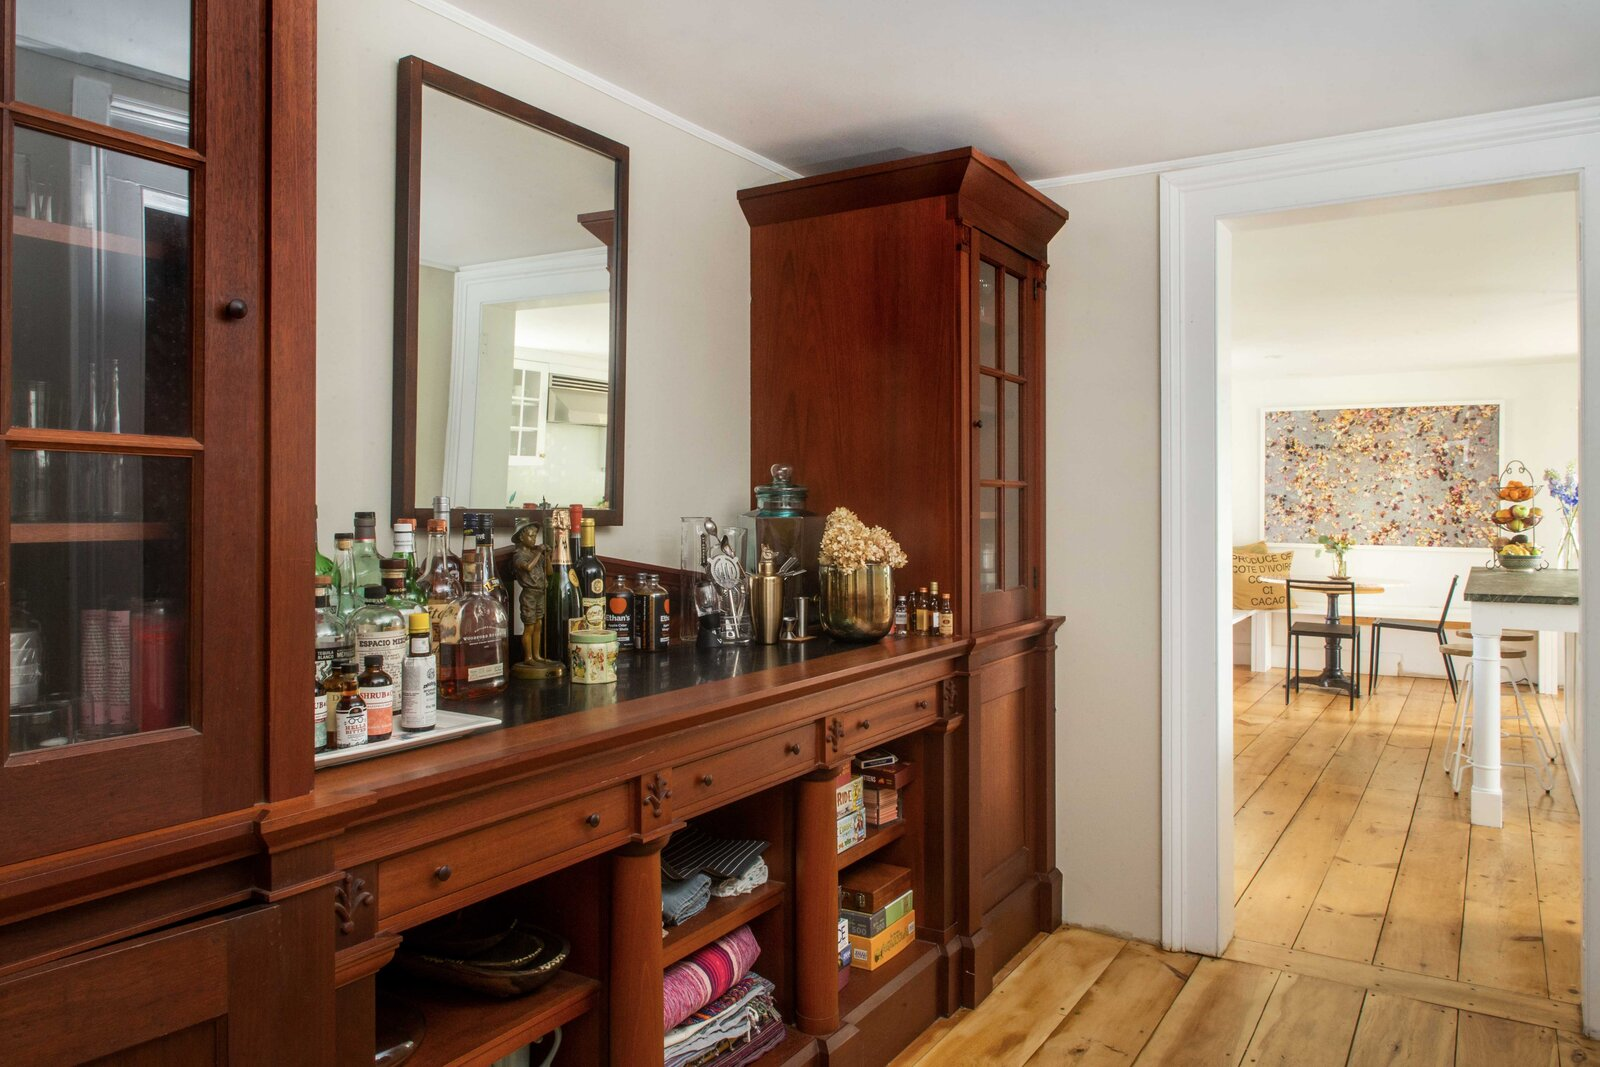 A hallway with built-in cabinetry connects the old and new sections of the home.  Photo 5 of 14 in For $795K, This 1865 Greek Revival Farmhouse Could Be Your Escape From New York